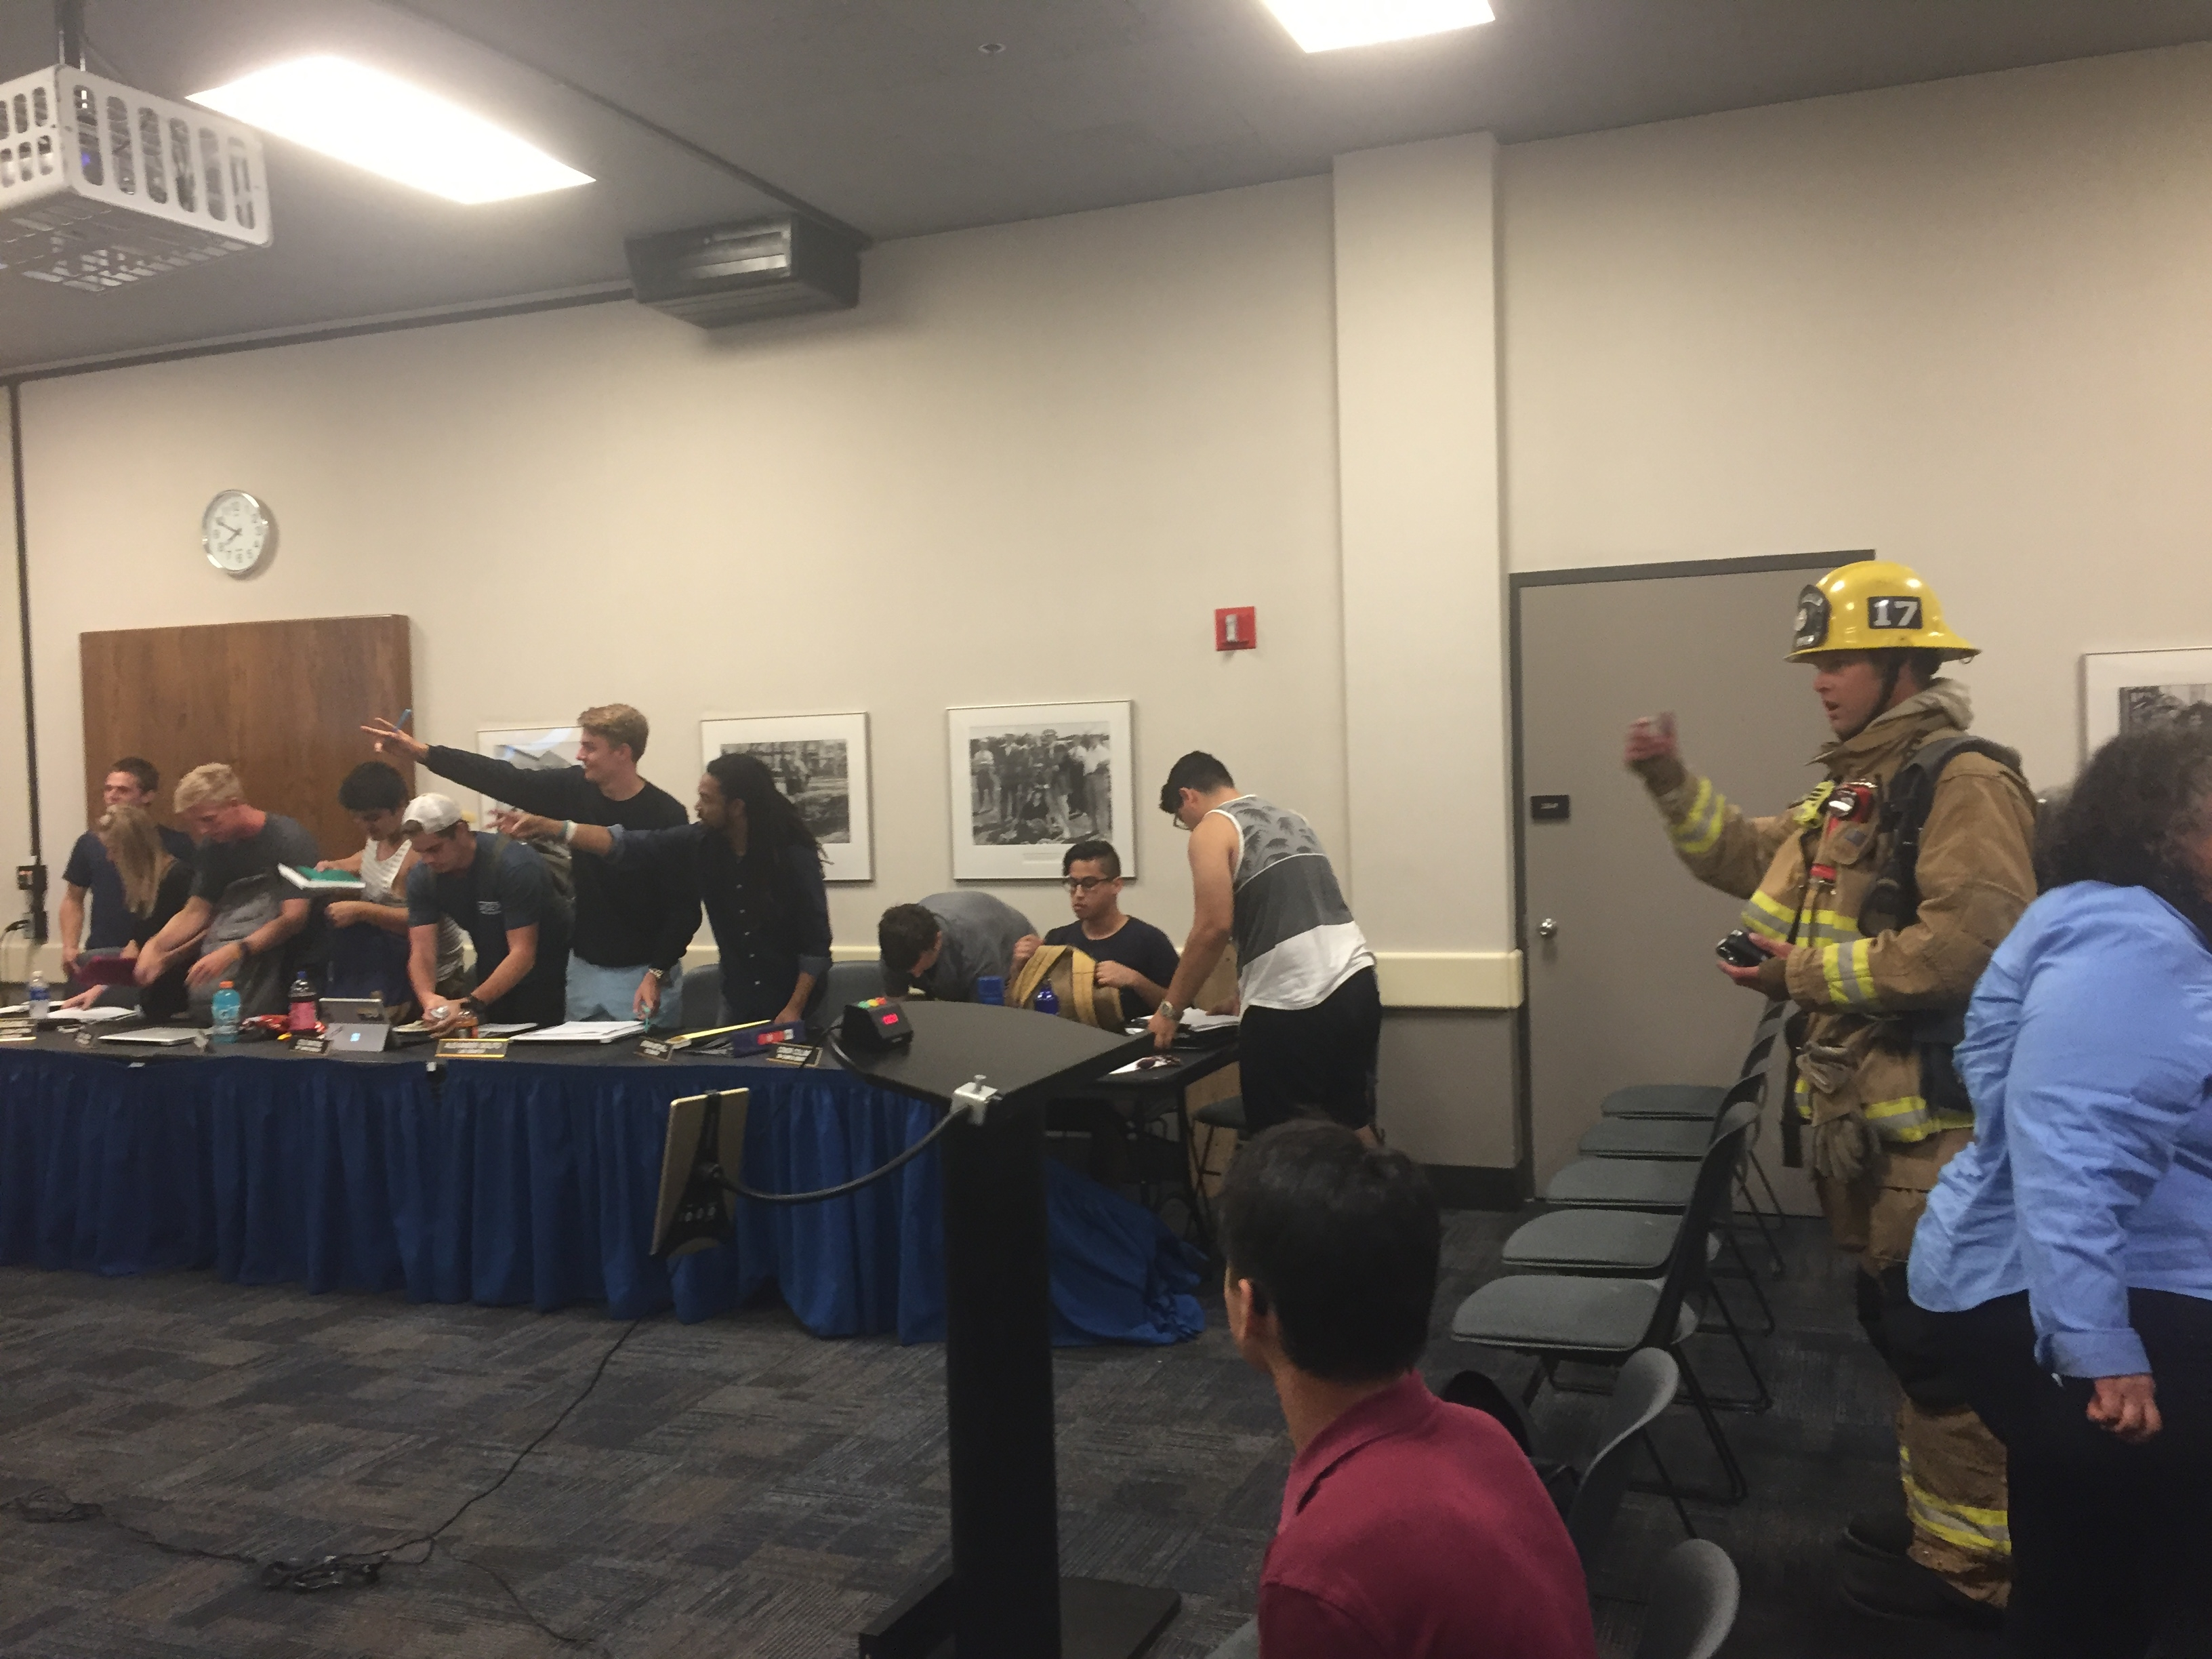 Senators second a motion to end the meeting after firefighters tell meeting attendees to evacuate the building.